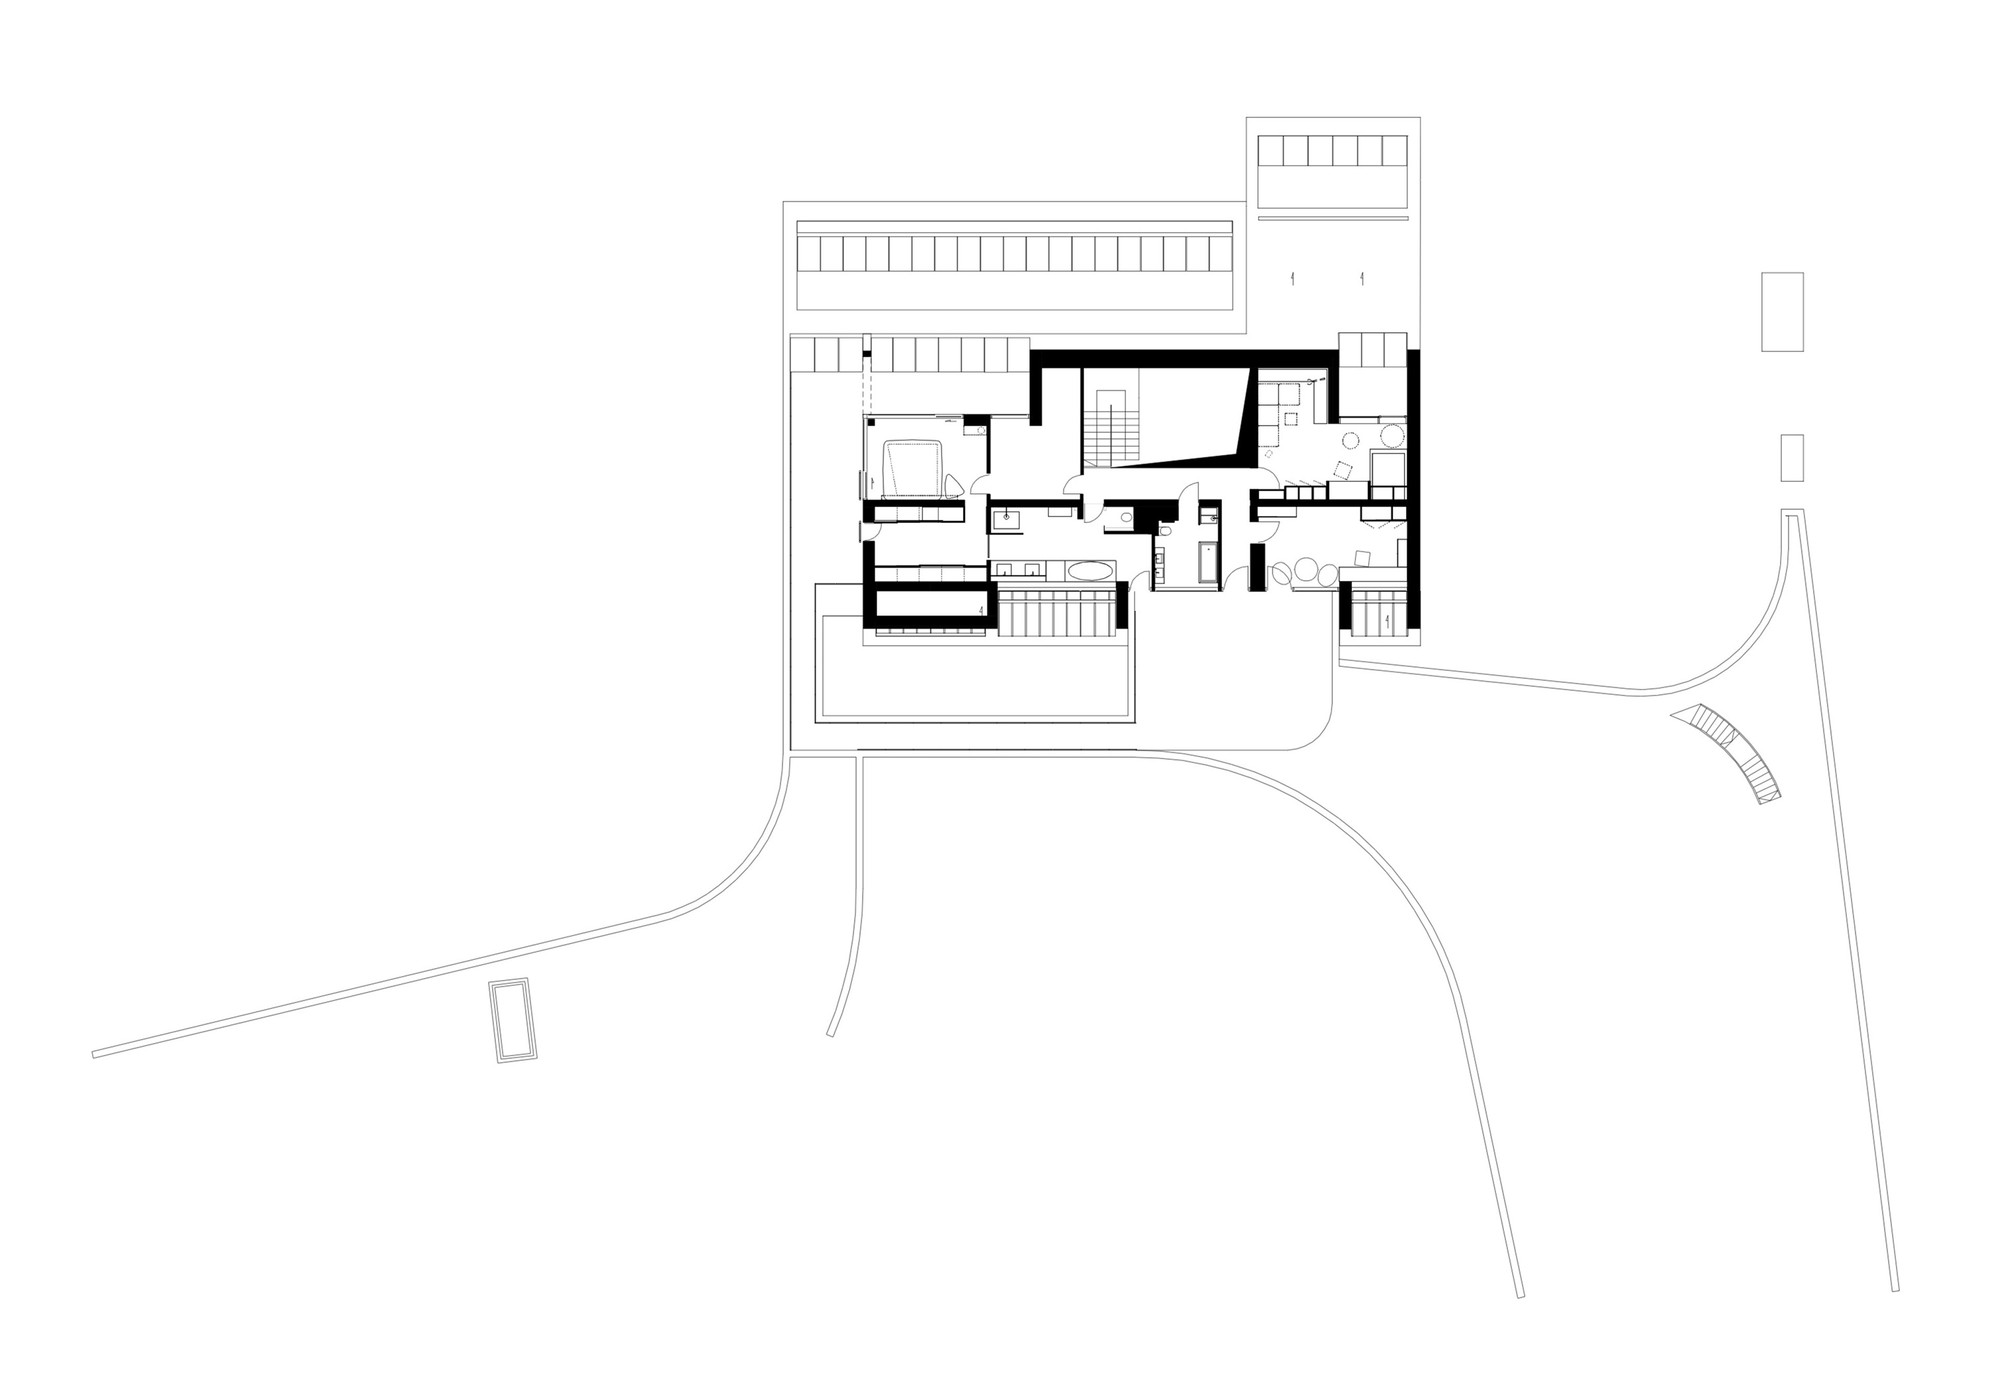 Edge Homes Floor Plans: Gallery Of Edge House / Mobius Architects